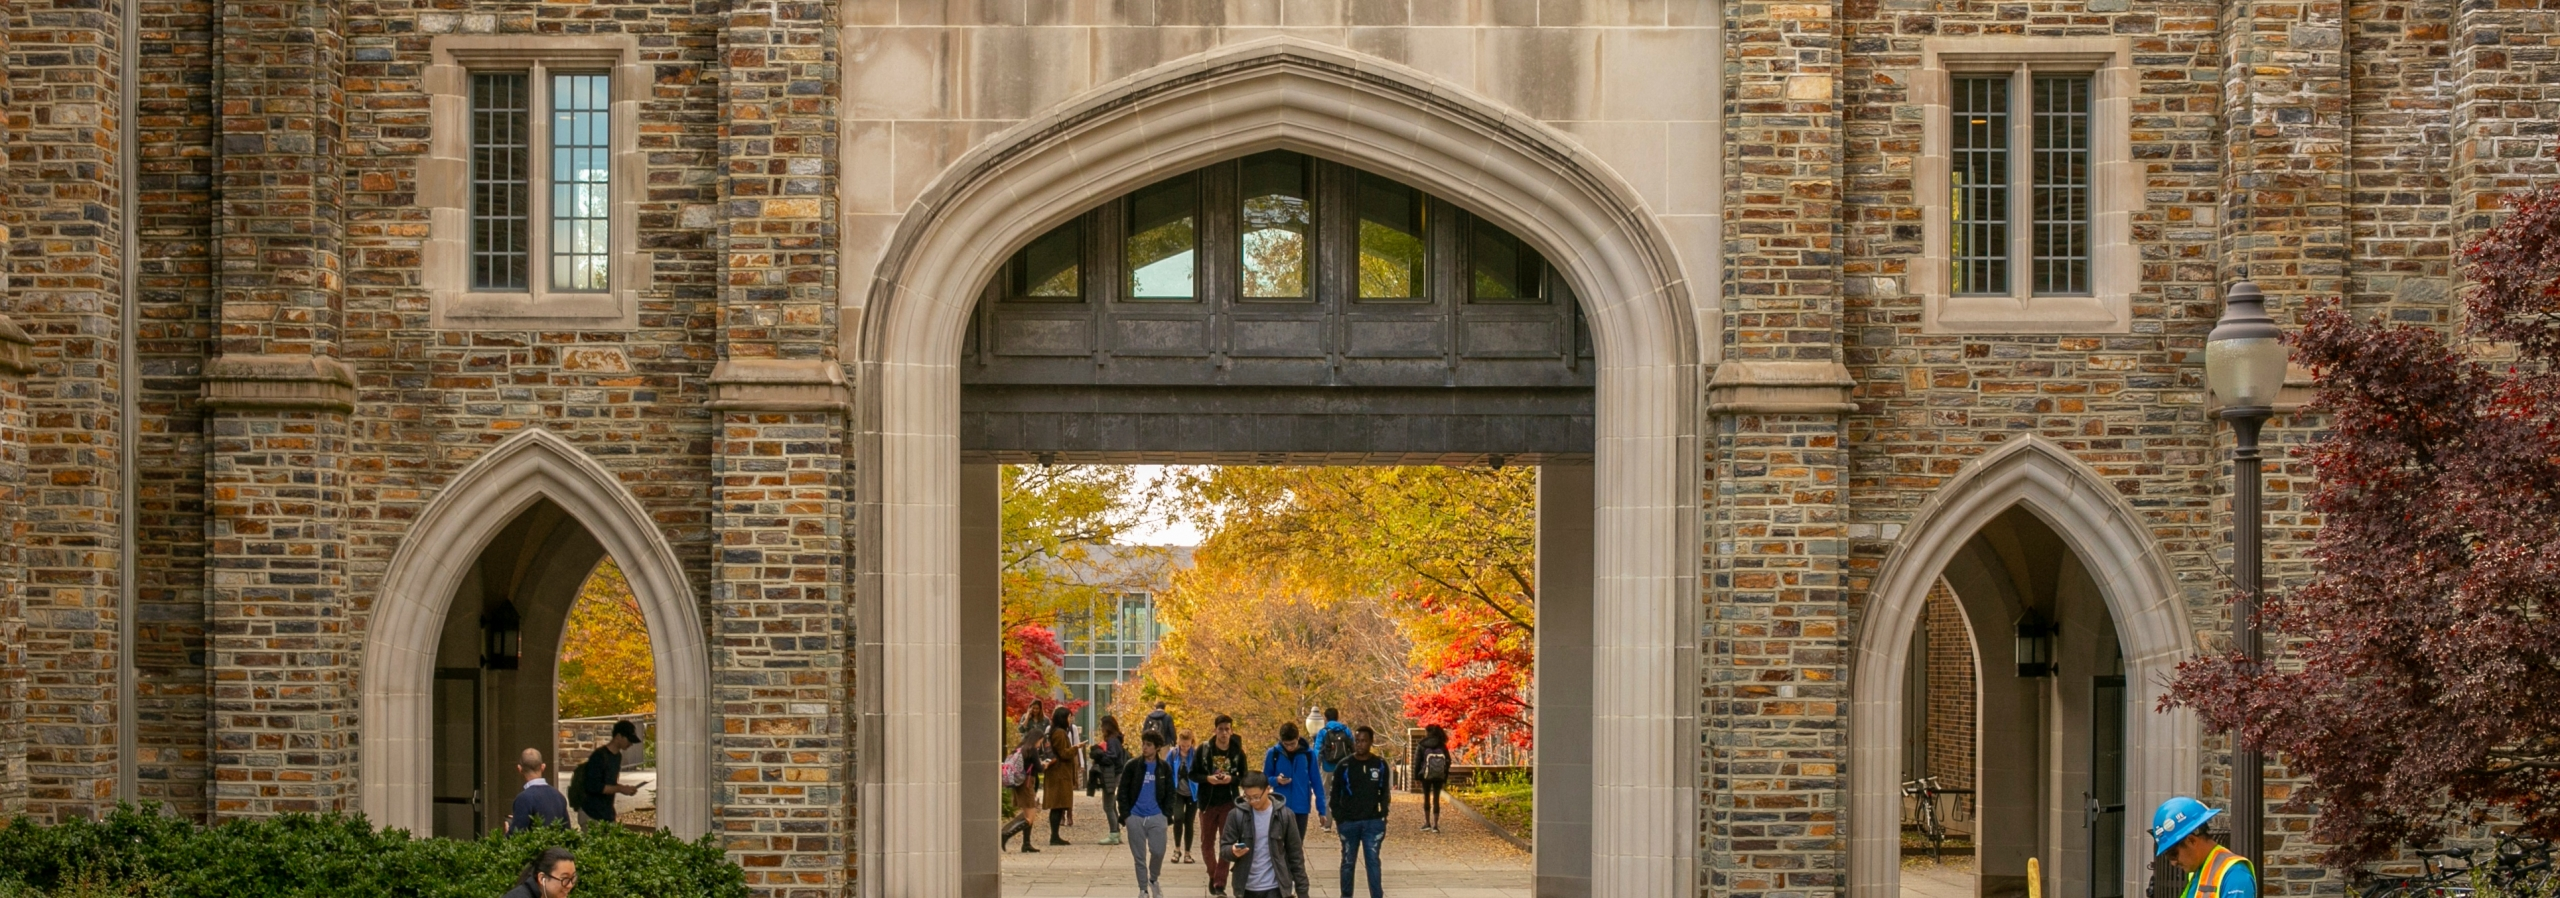 Gothic pointed archway at Duke University